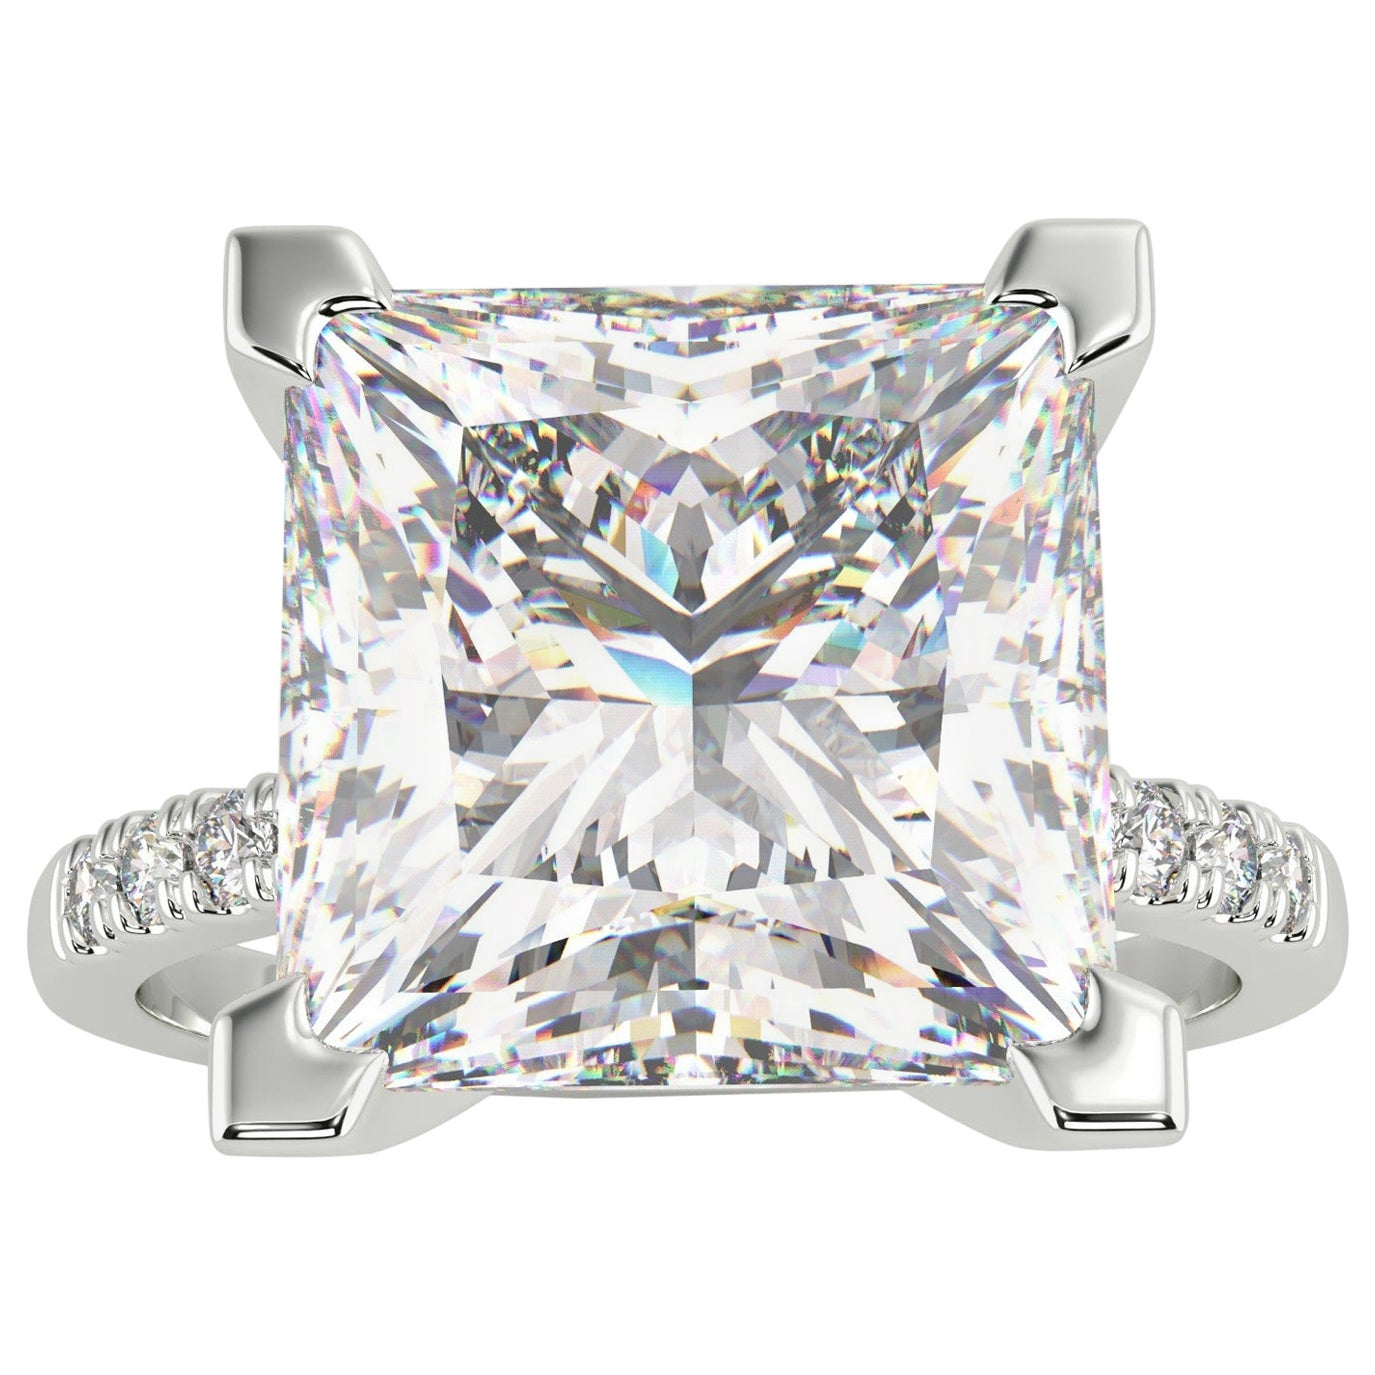 GIA 4.50 Carat Princess Cut Diamond Platinum Ring